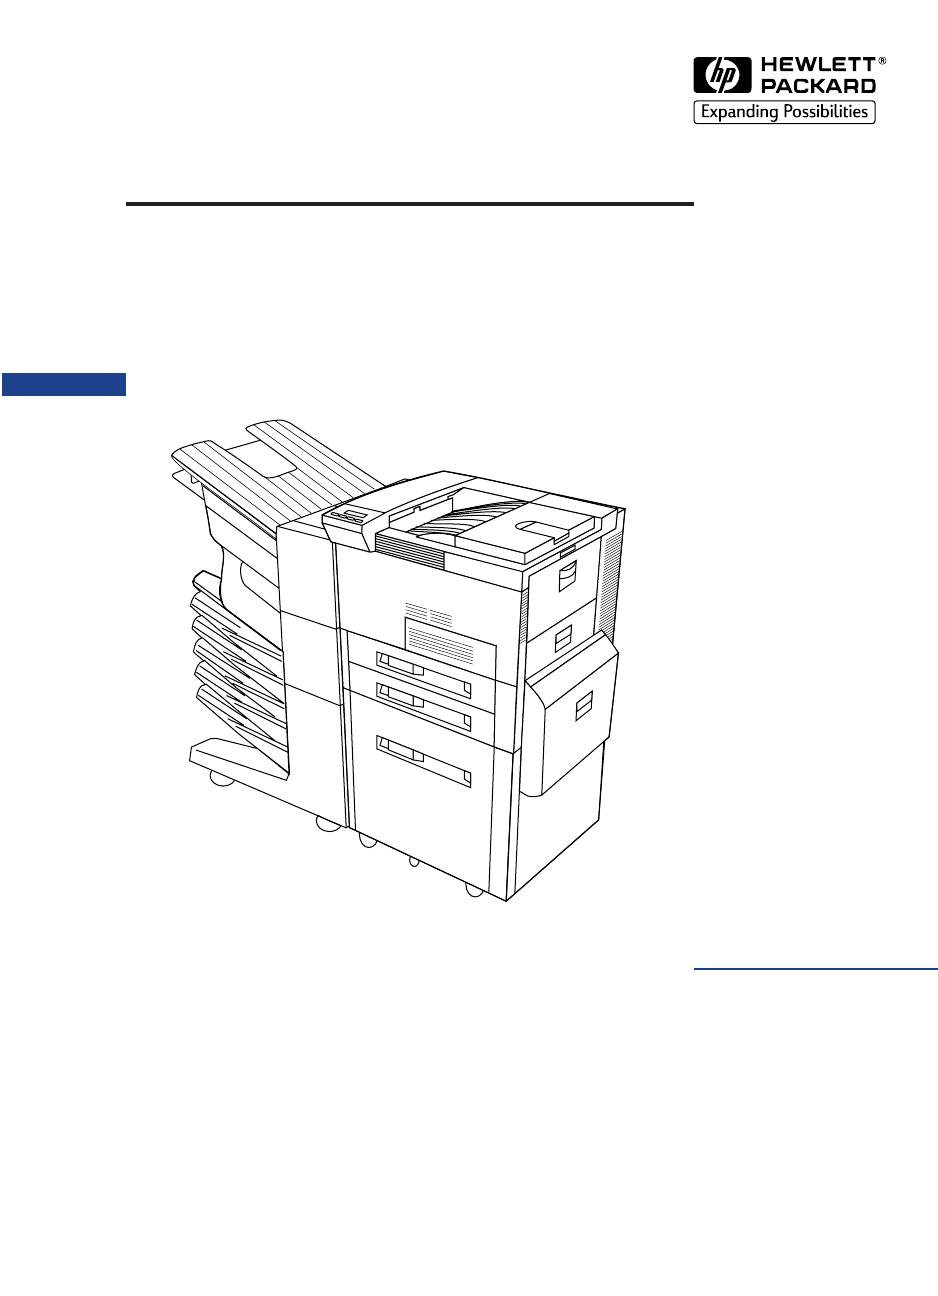 HP LaserJet 8100/8100N/8100DN and Paper Handling Devices